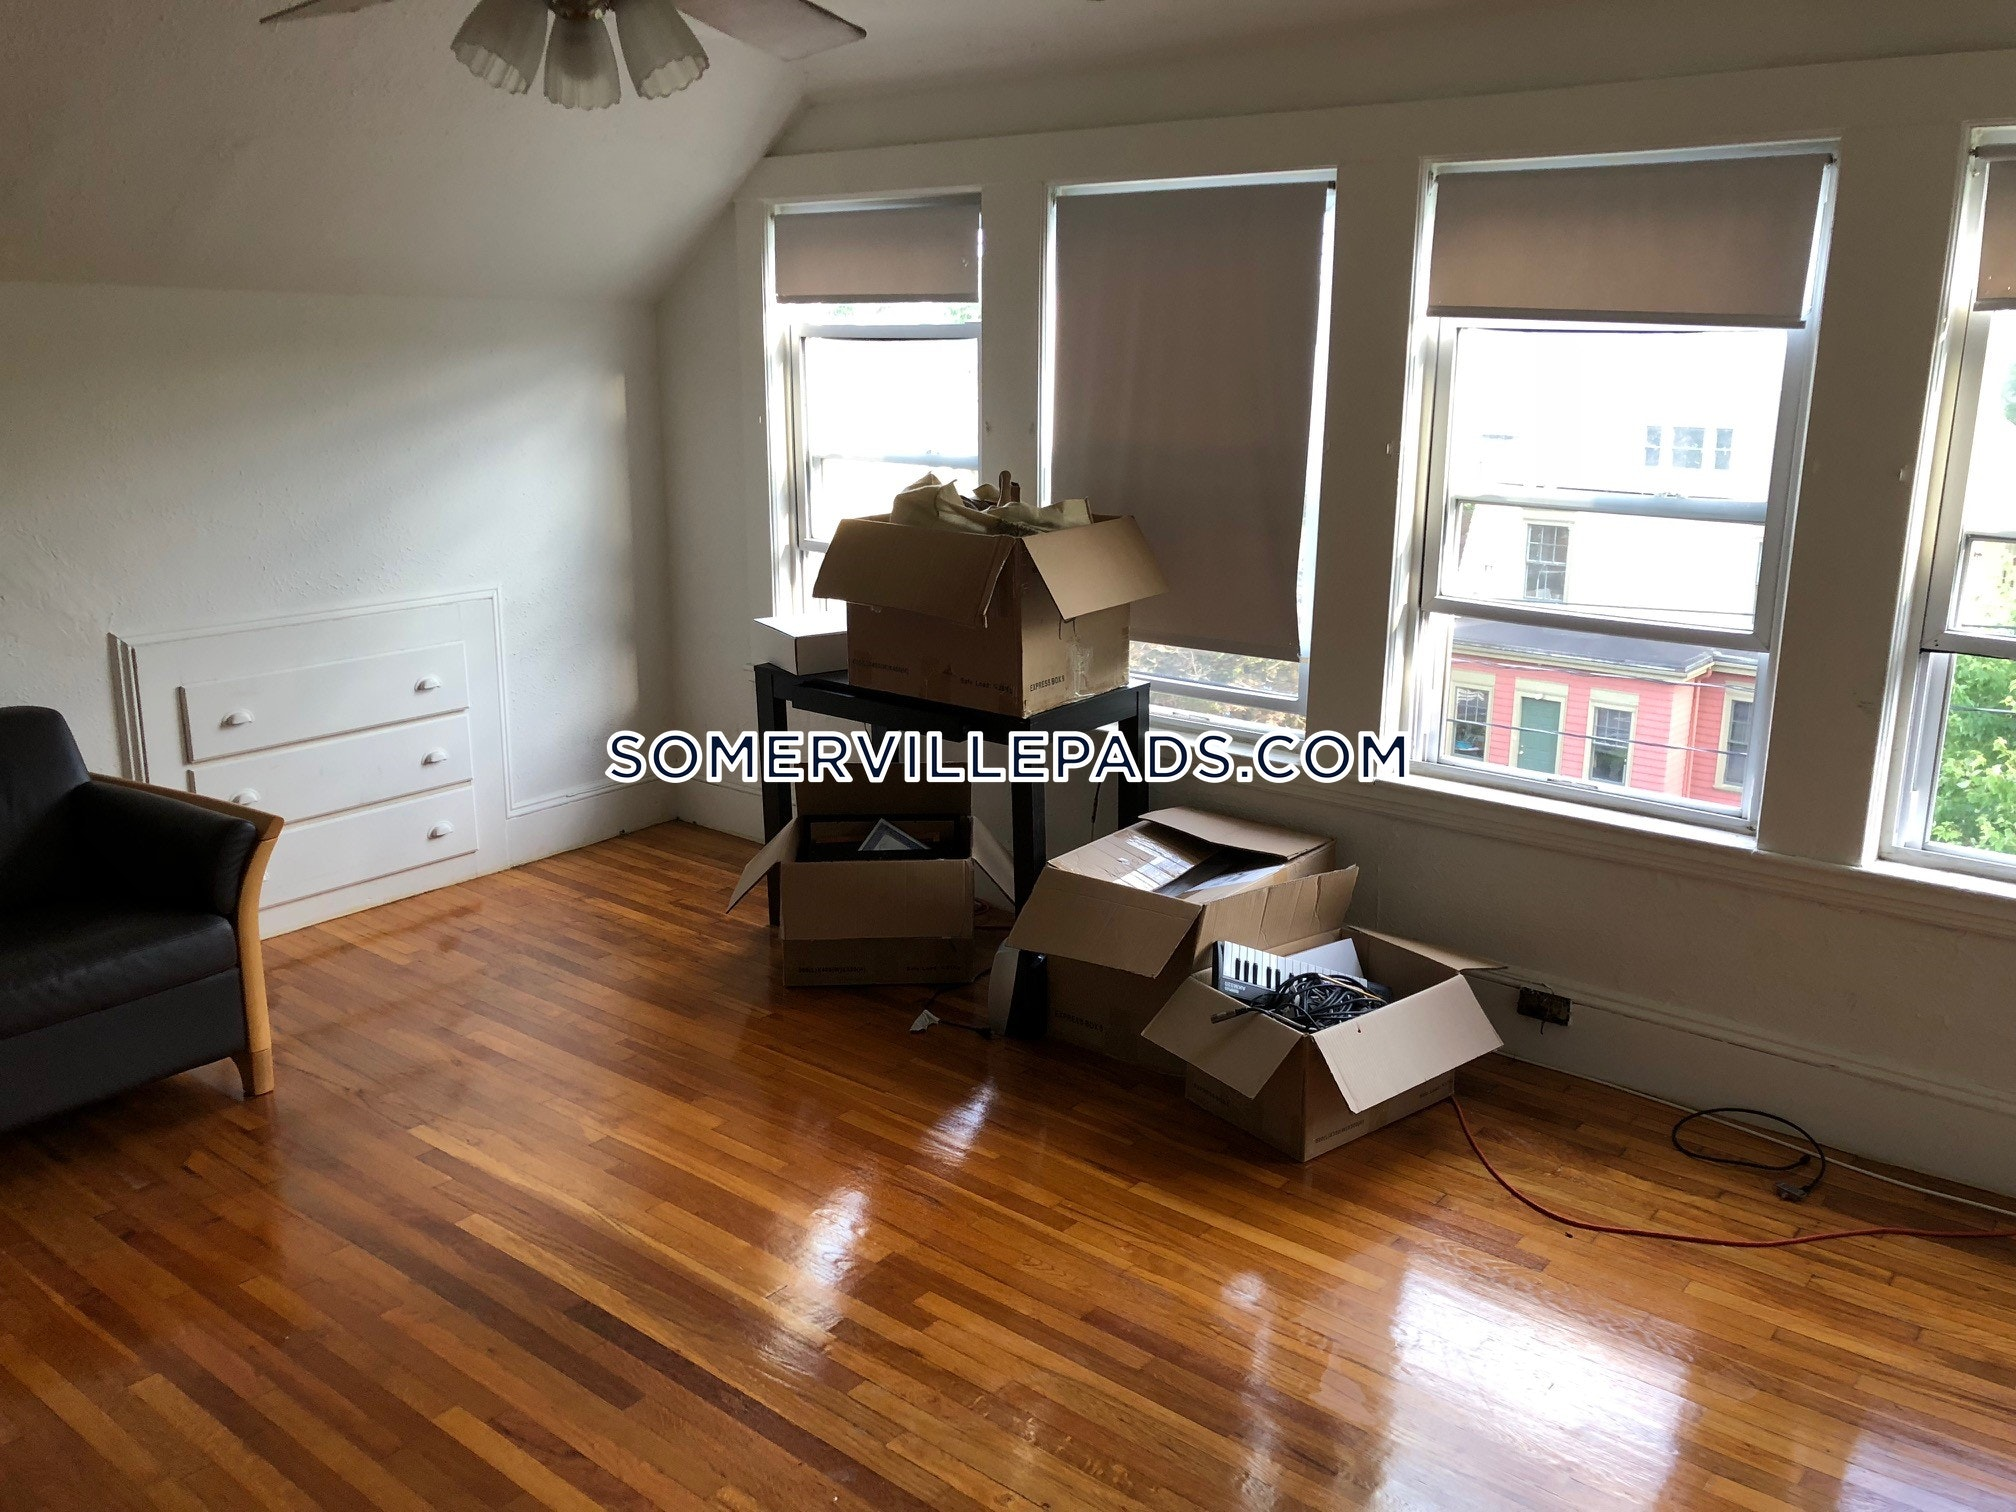 2-beds-1-bath-somerville-spring-hill-2400-365195